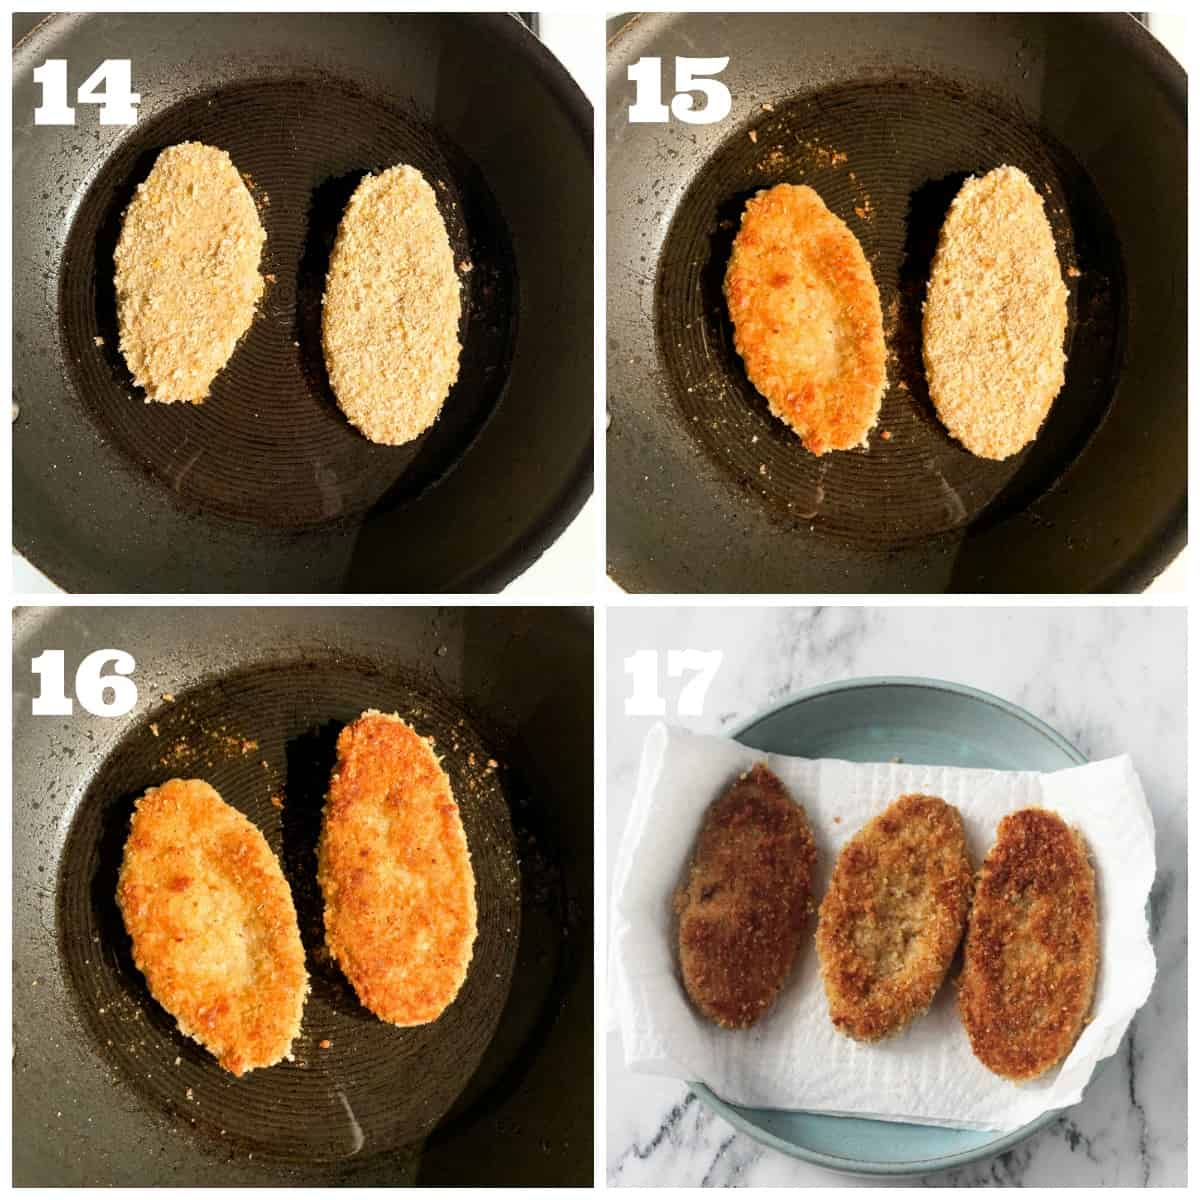 4 photo collage showing how to pan fry the breaded vegan chicken cutlets.